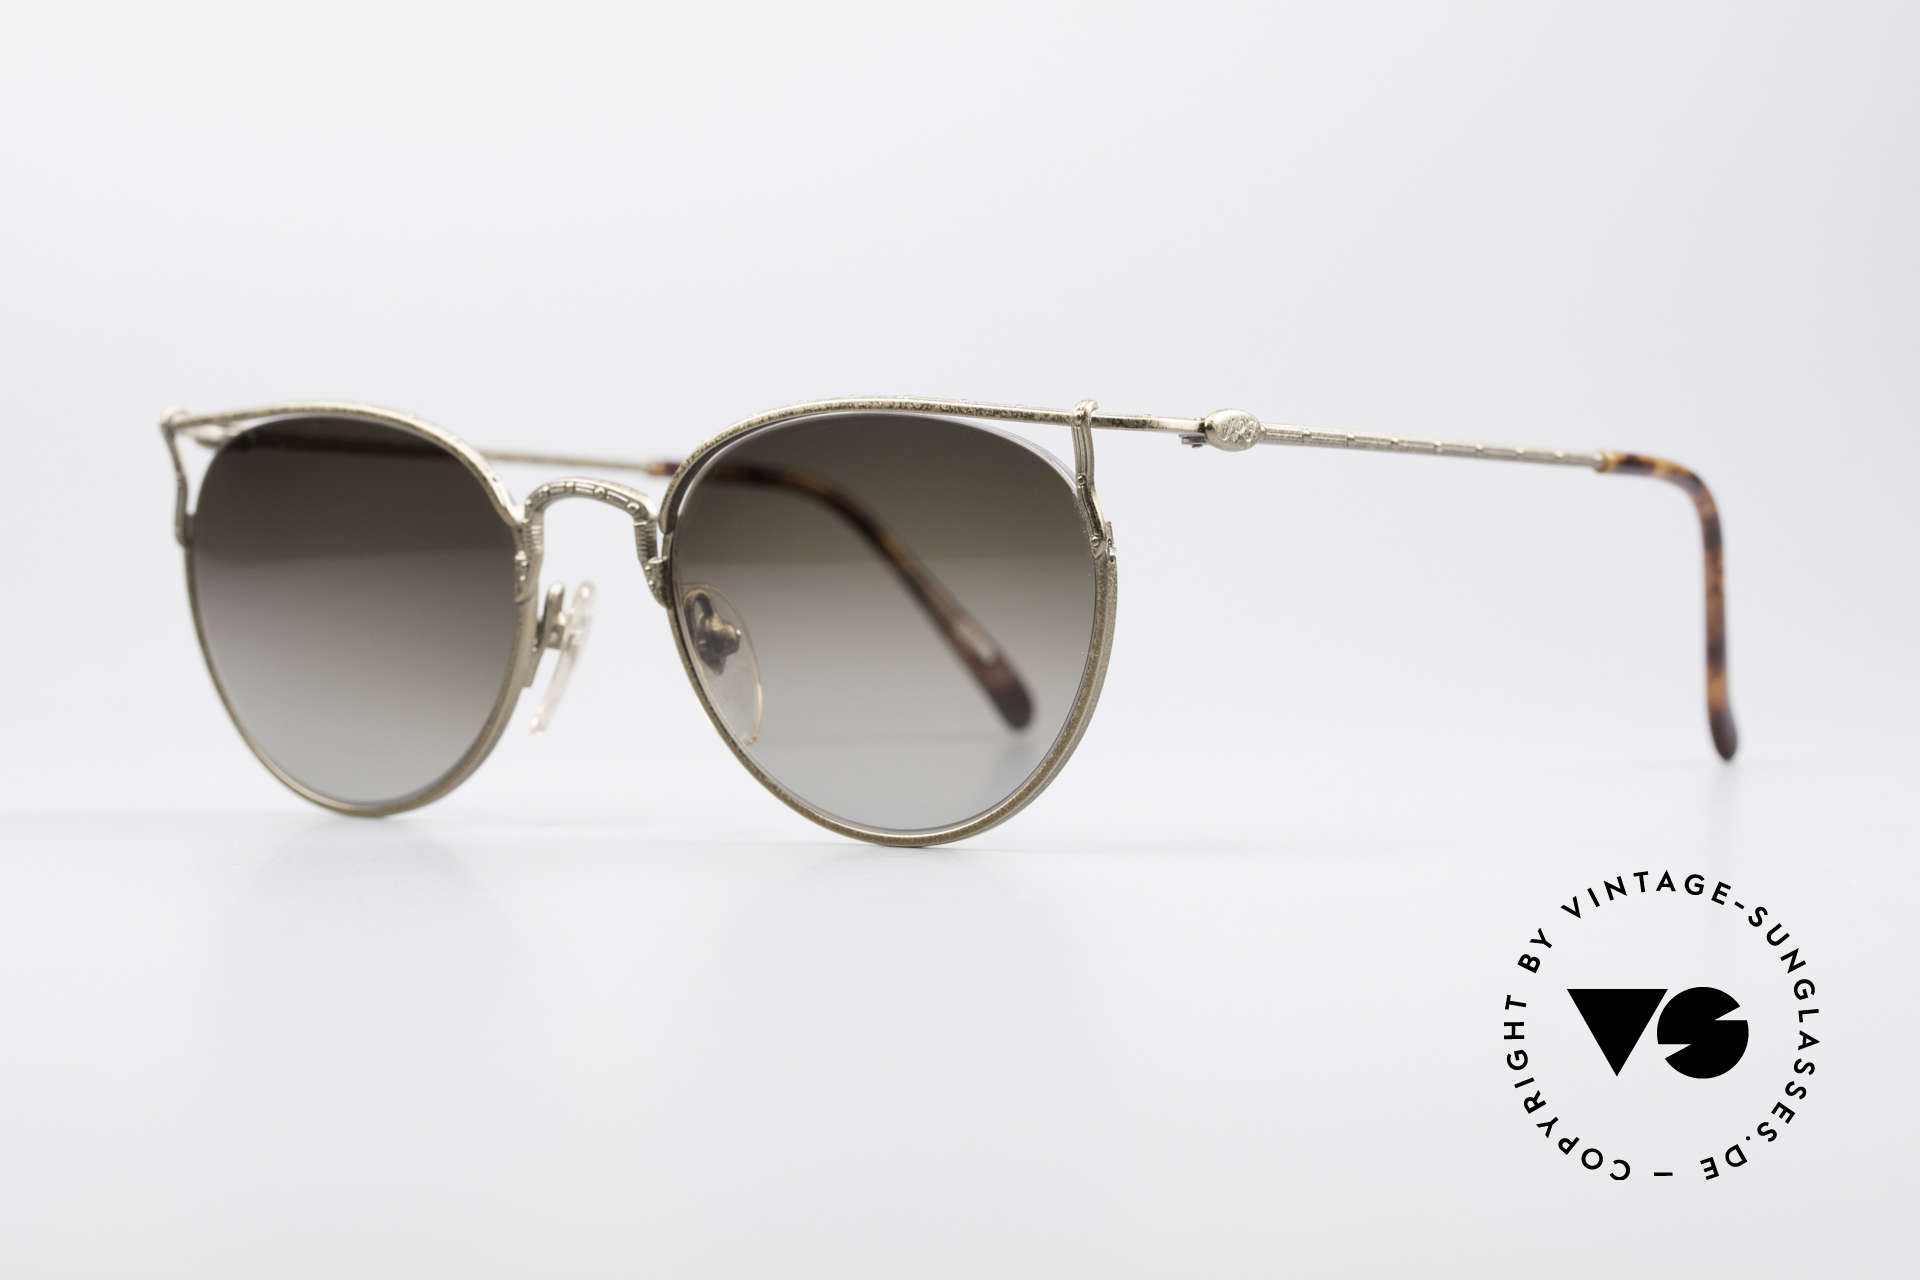 Jean Paul Gaultier 55-3177 Interesting Vintage Frame, interesting construction (semi rimless setting), Made for Men and Women